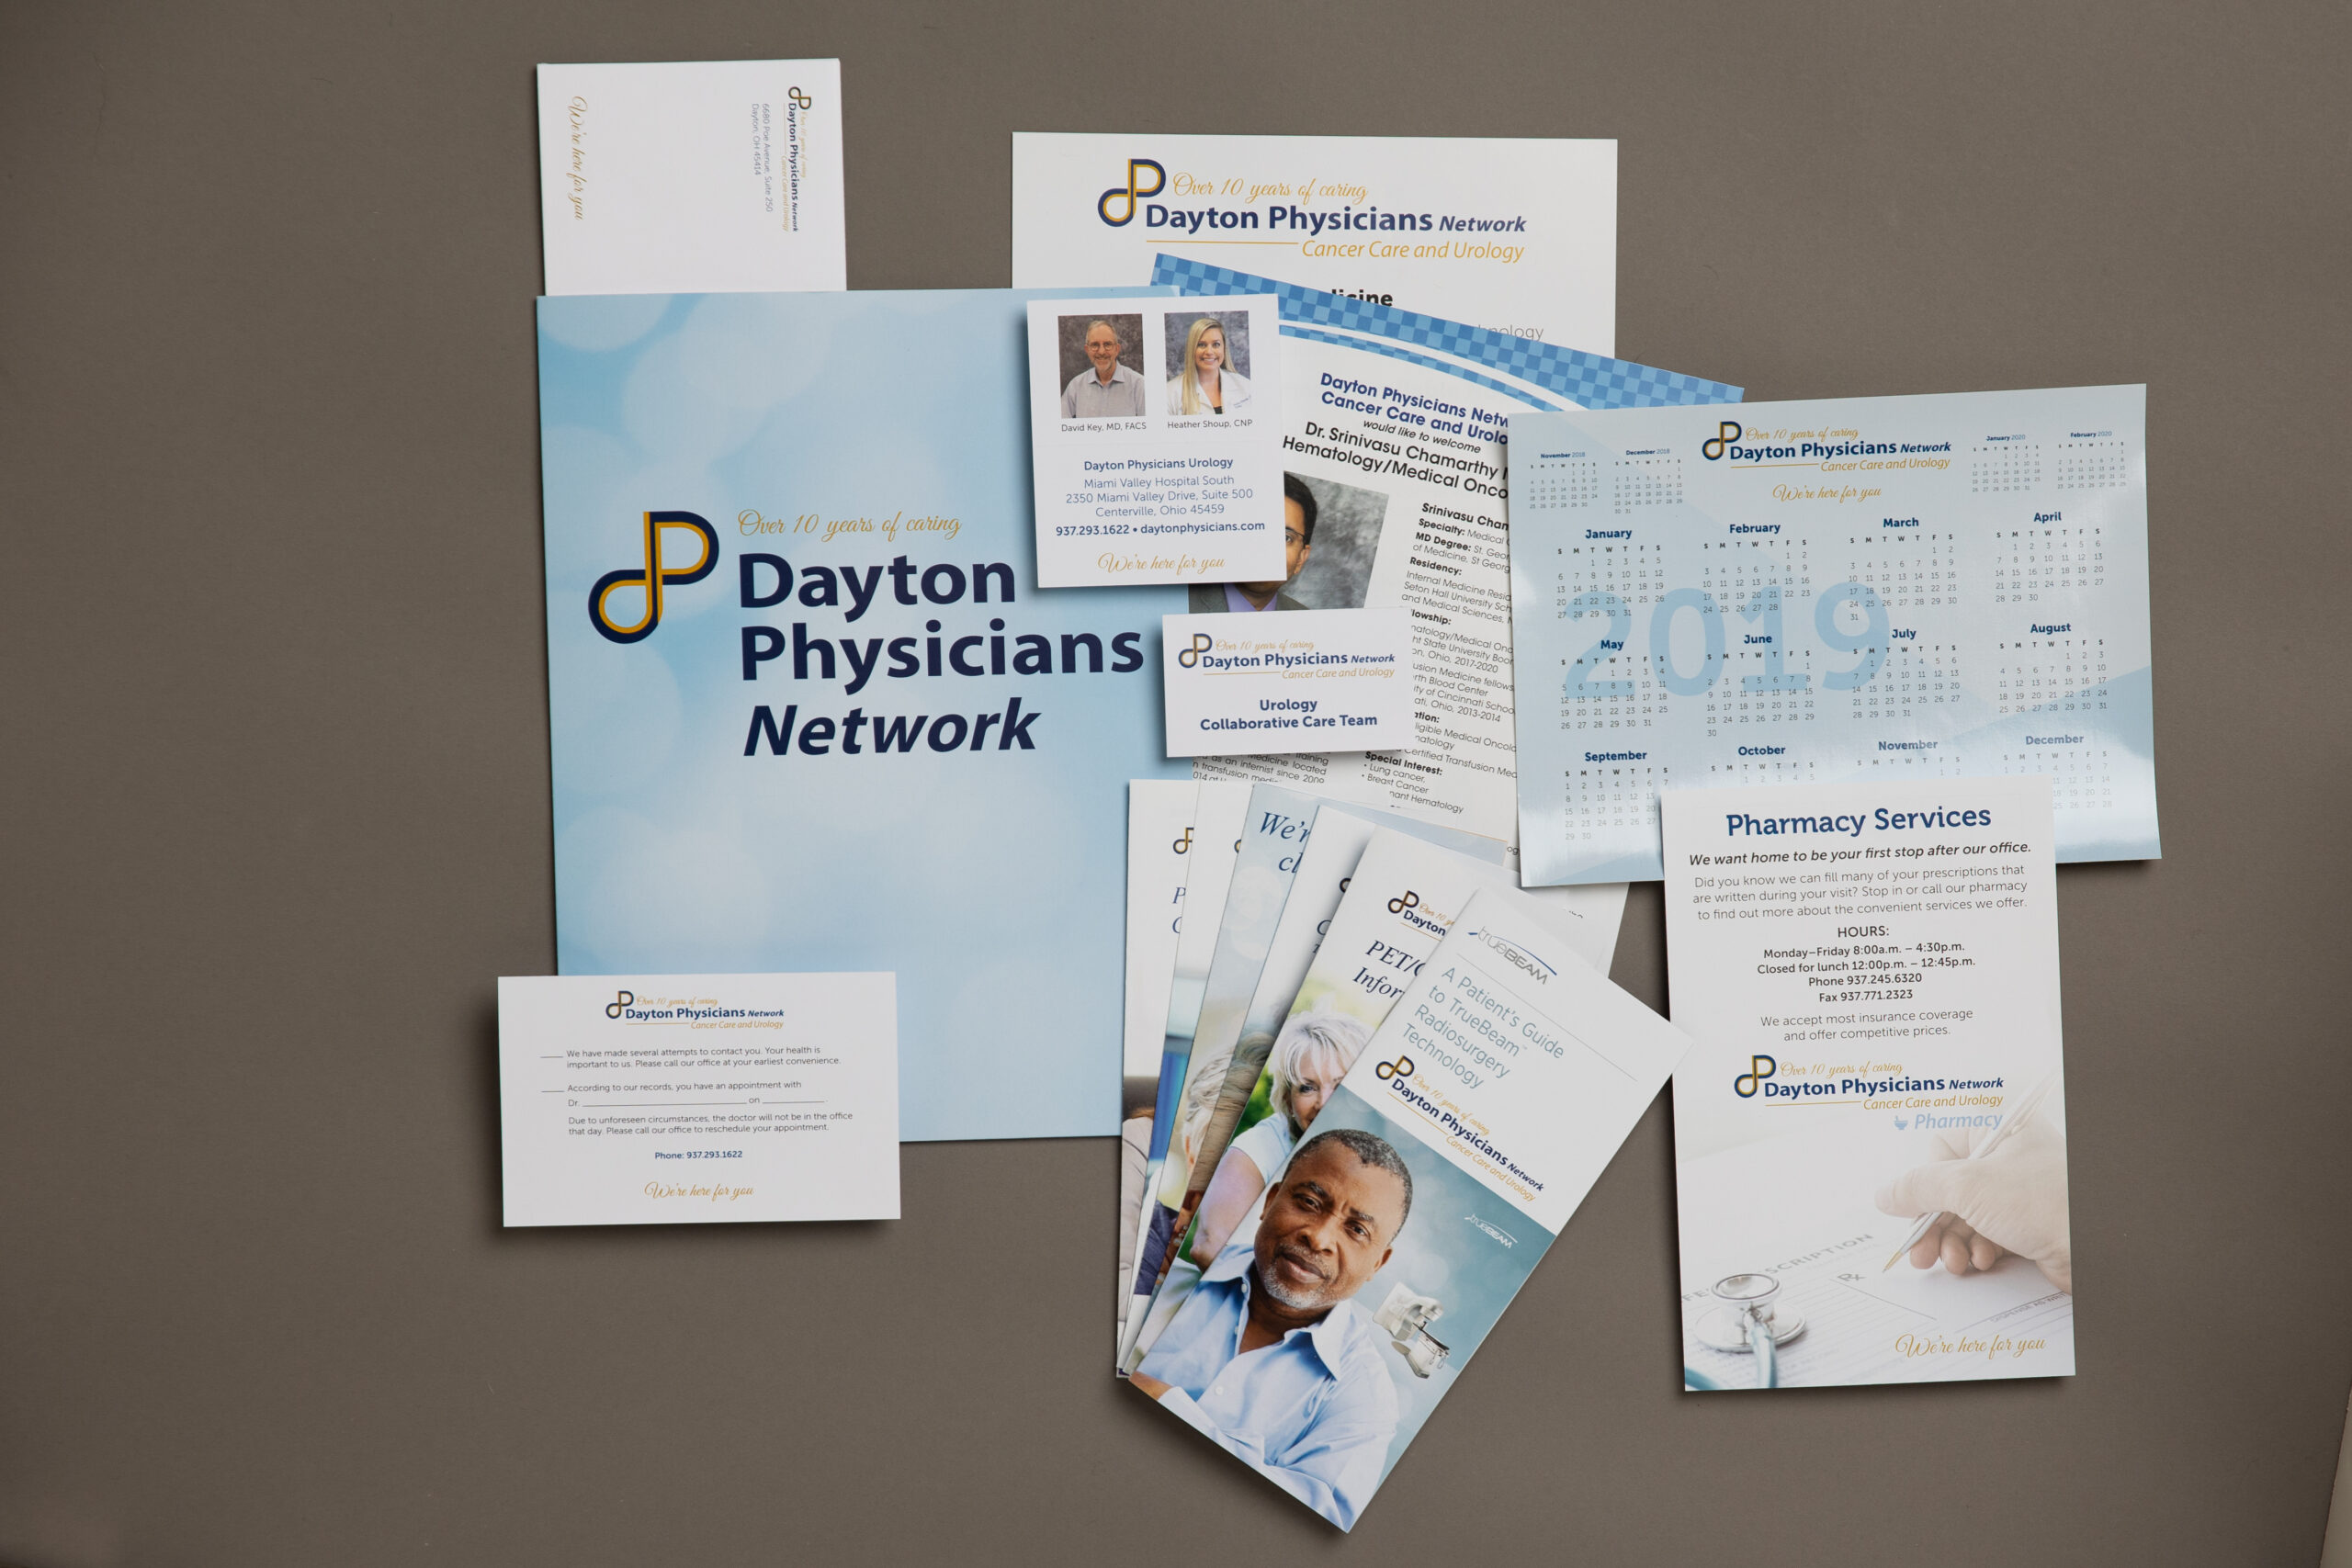 print logo branding identity project for Dayton Physicians Network by Oregon Printing Ohio